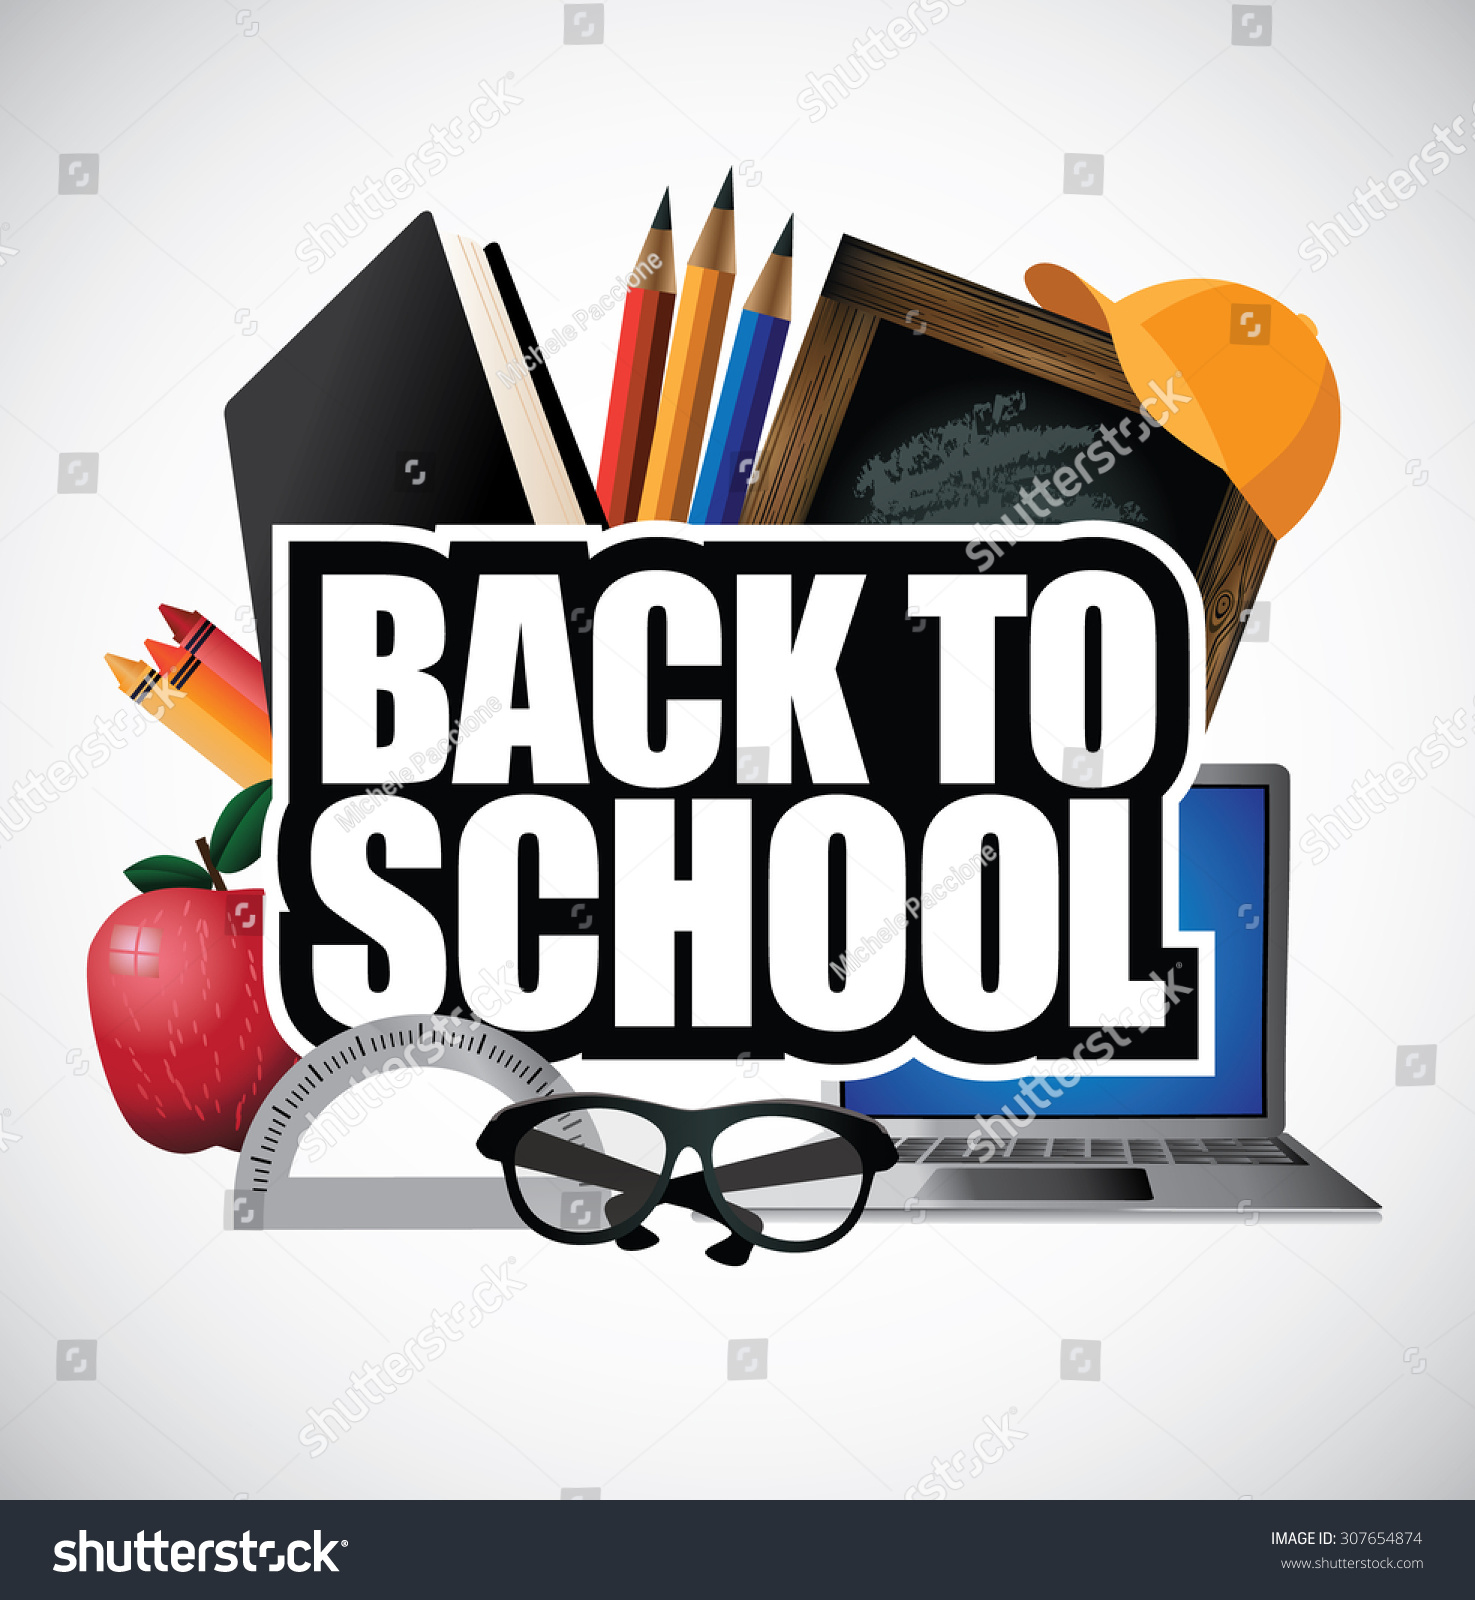 Poster design article - Back To School Design Illustration For Greeting Card Ad Promotion Poster